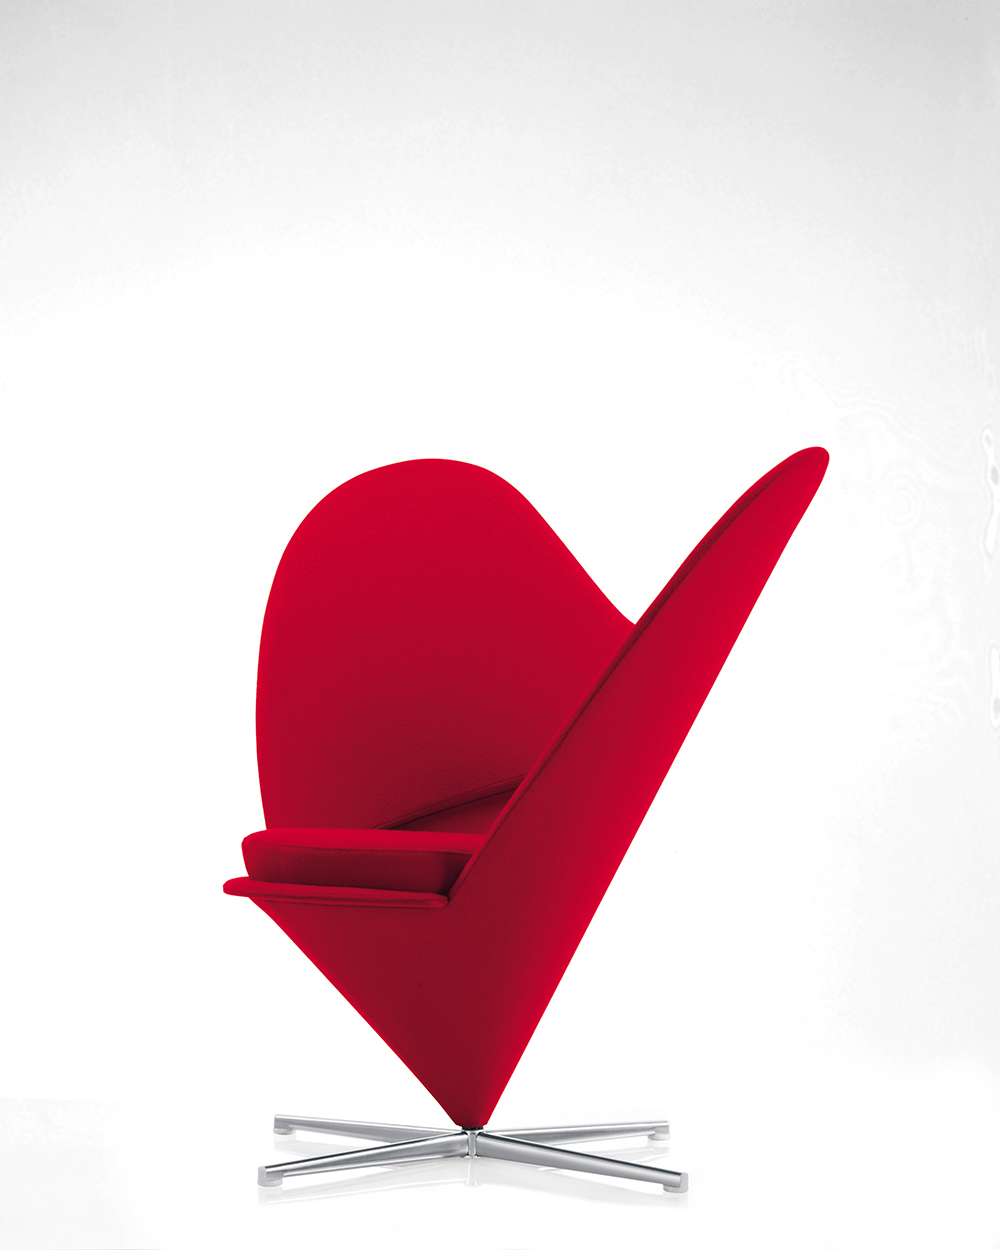 Heart Cone Chair, Design Verner Panton, 1959